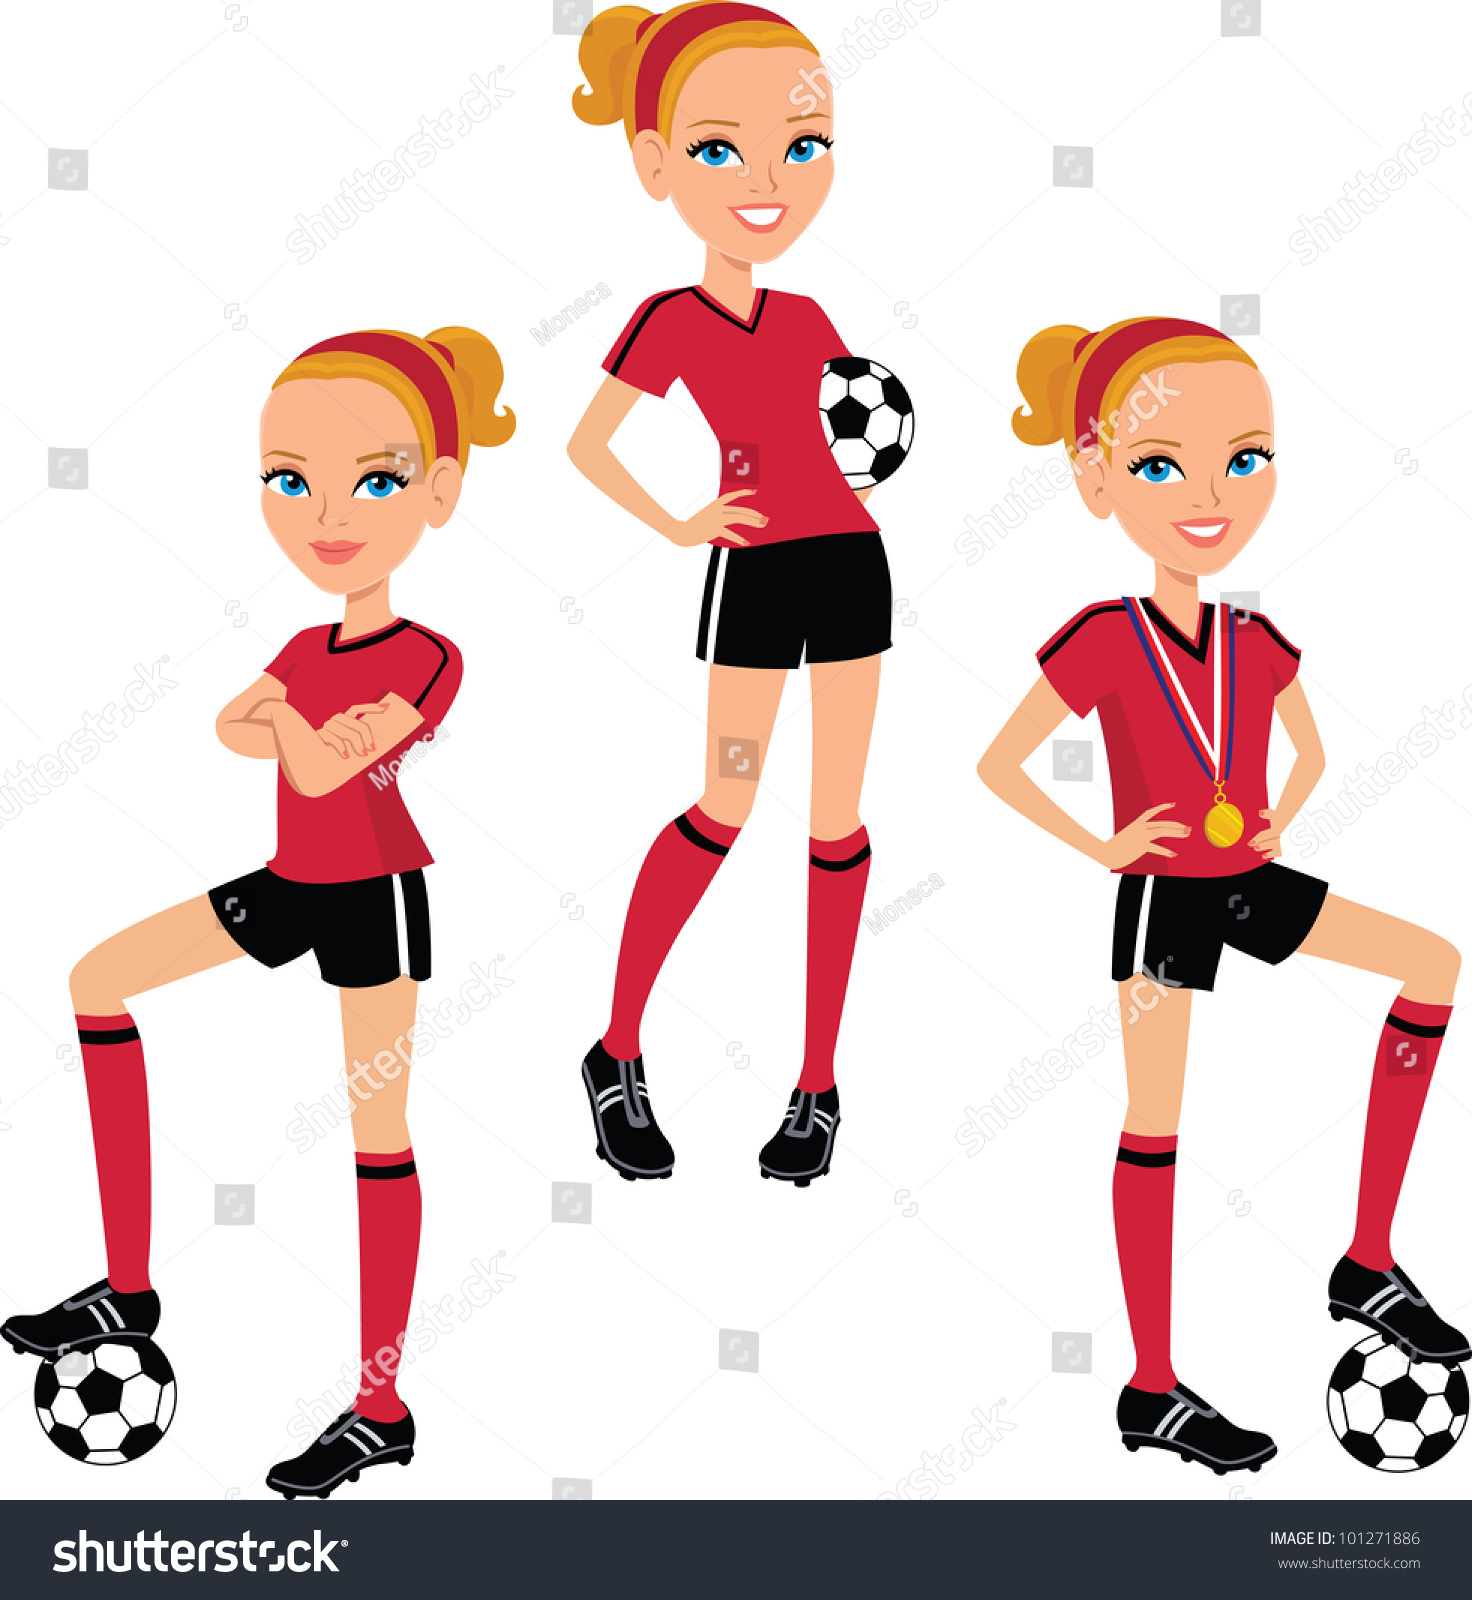 Cartoon Characters Getting High : Soccer cartoon character girl poses set stock vector